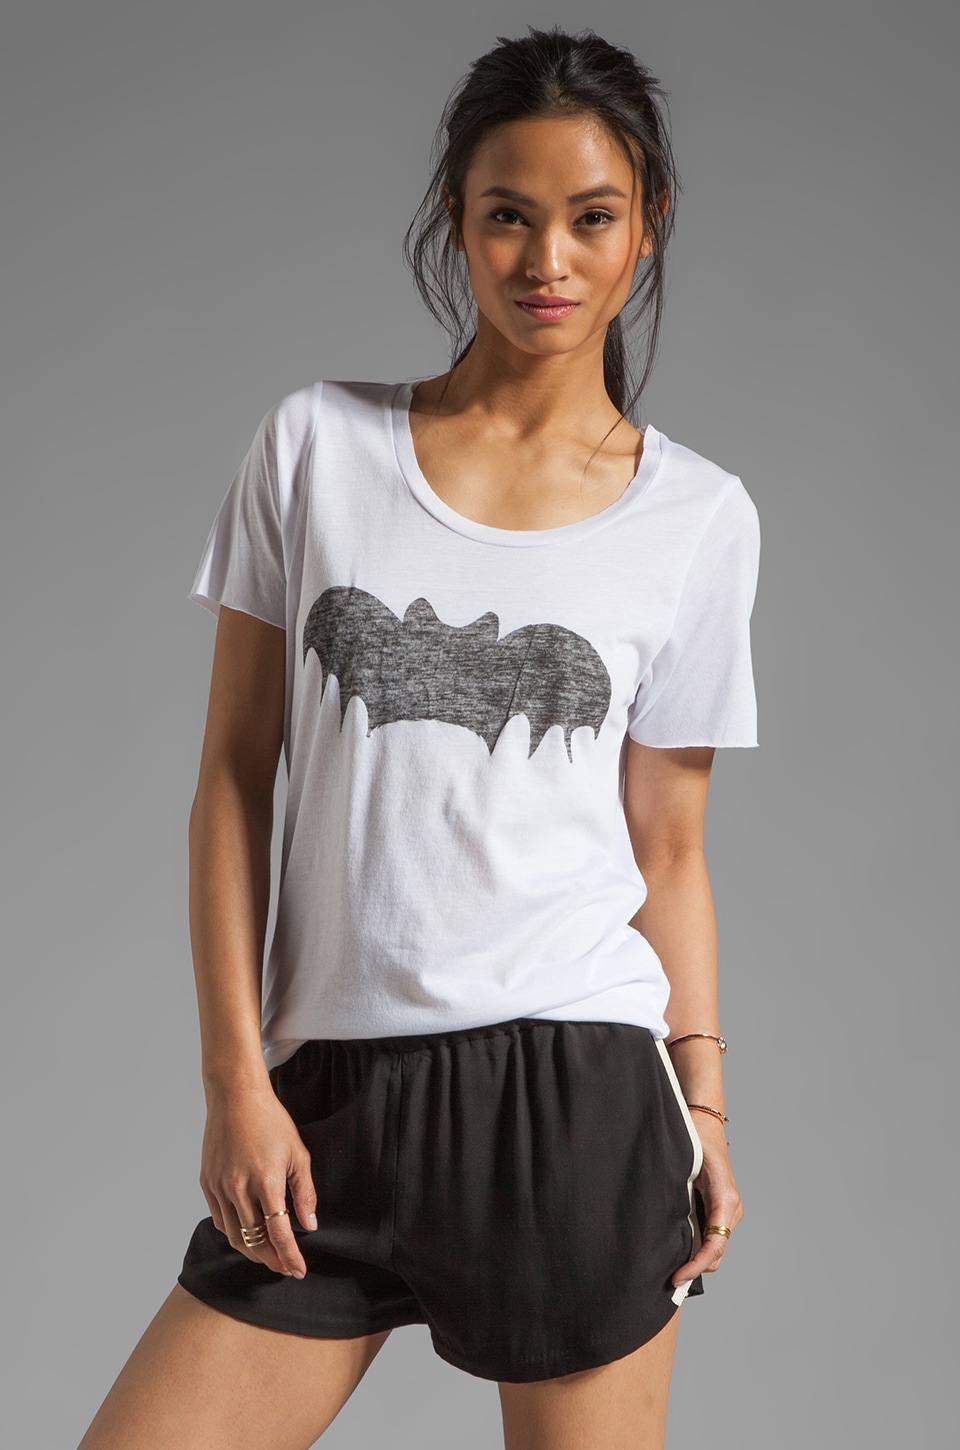 Zoe Karssen Loose Fit Short Sleeve Bat Tee in White